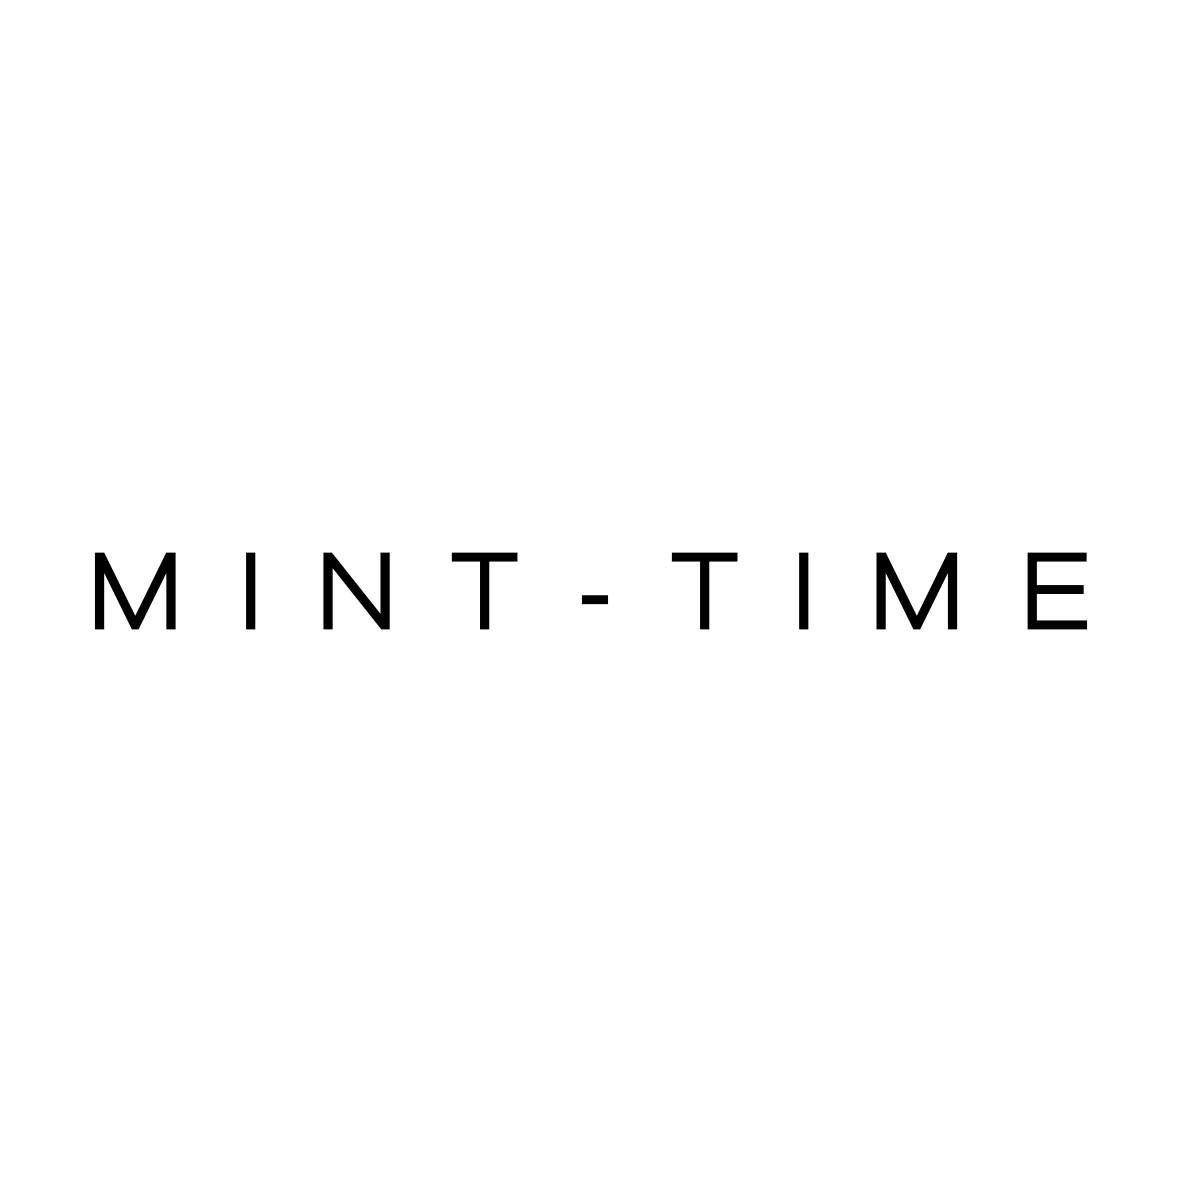 MINT TIME